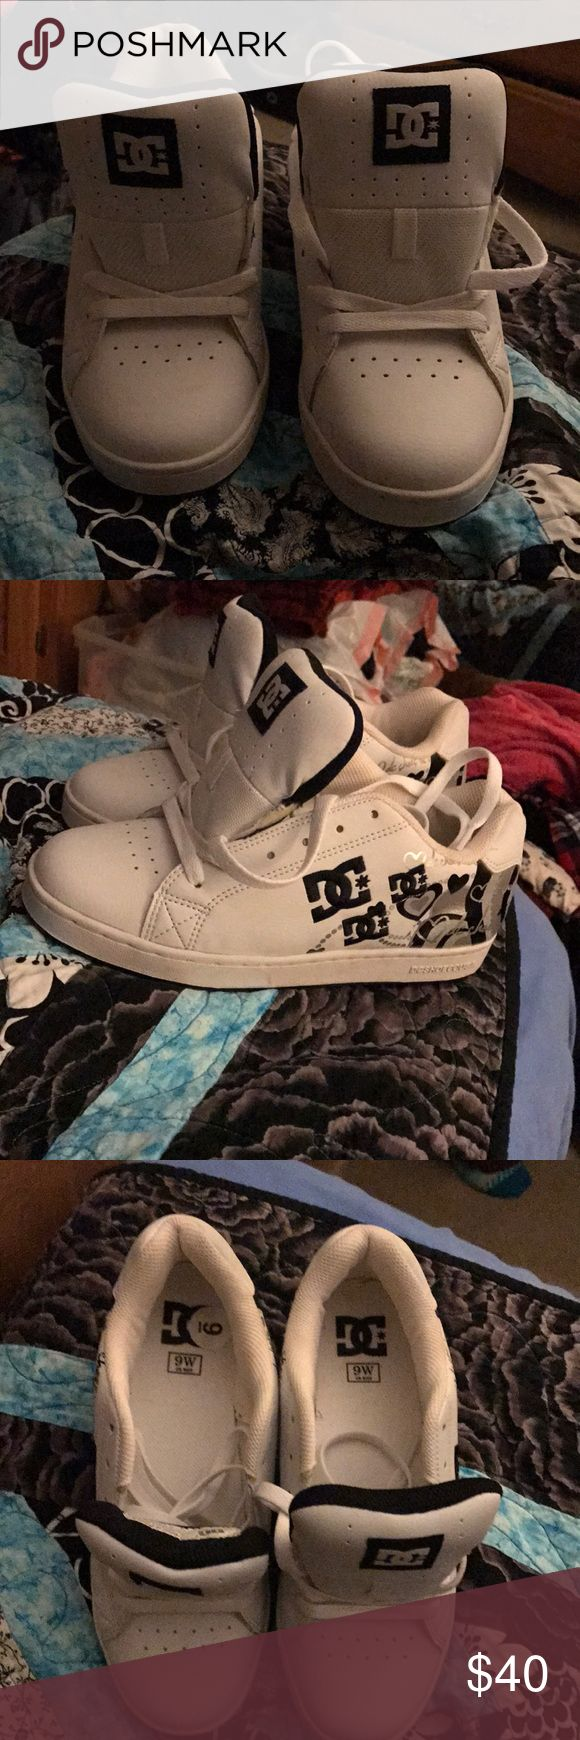 Women's size 9 BRAND NEW DC shoes All white shoes with some black and gray DC graphics on the side and back DC Shoe Company Shoes Sneakers